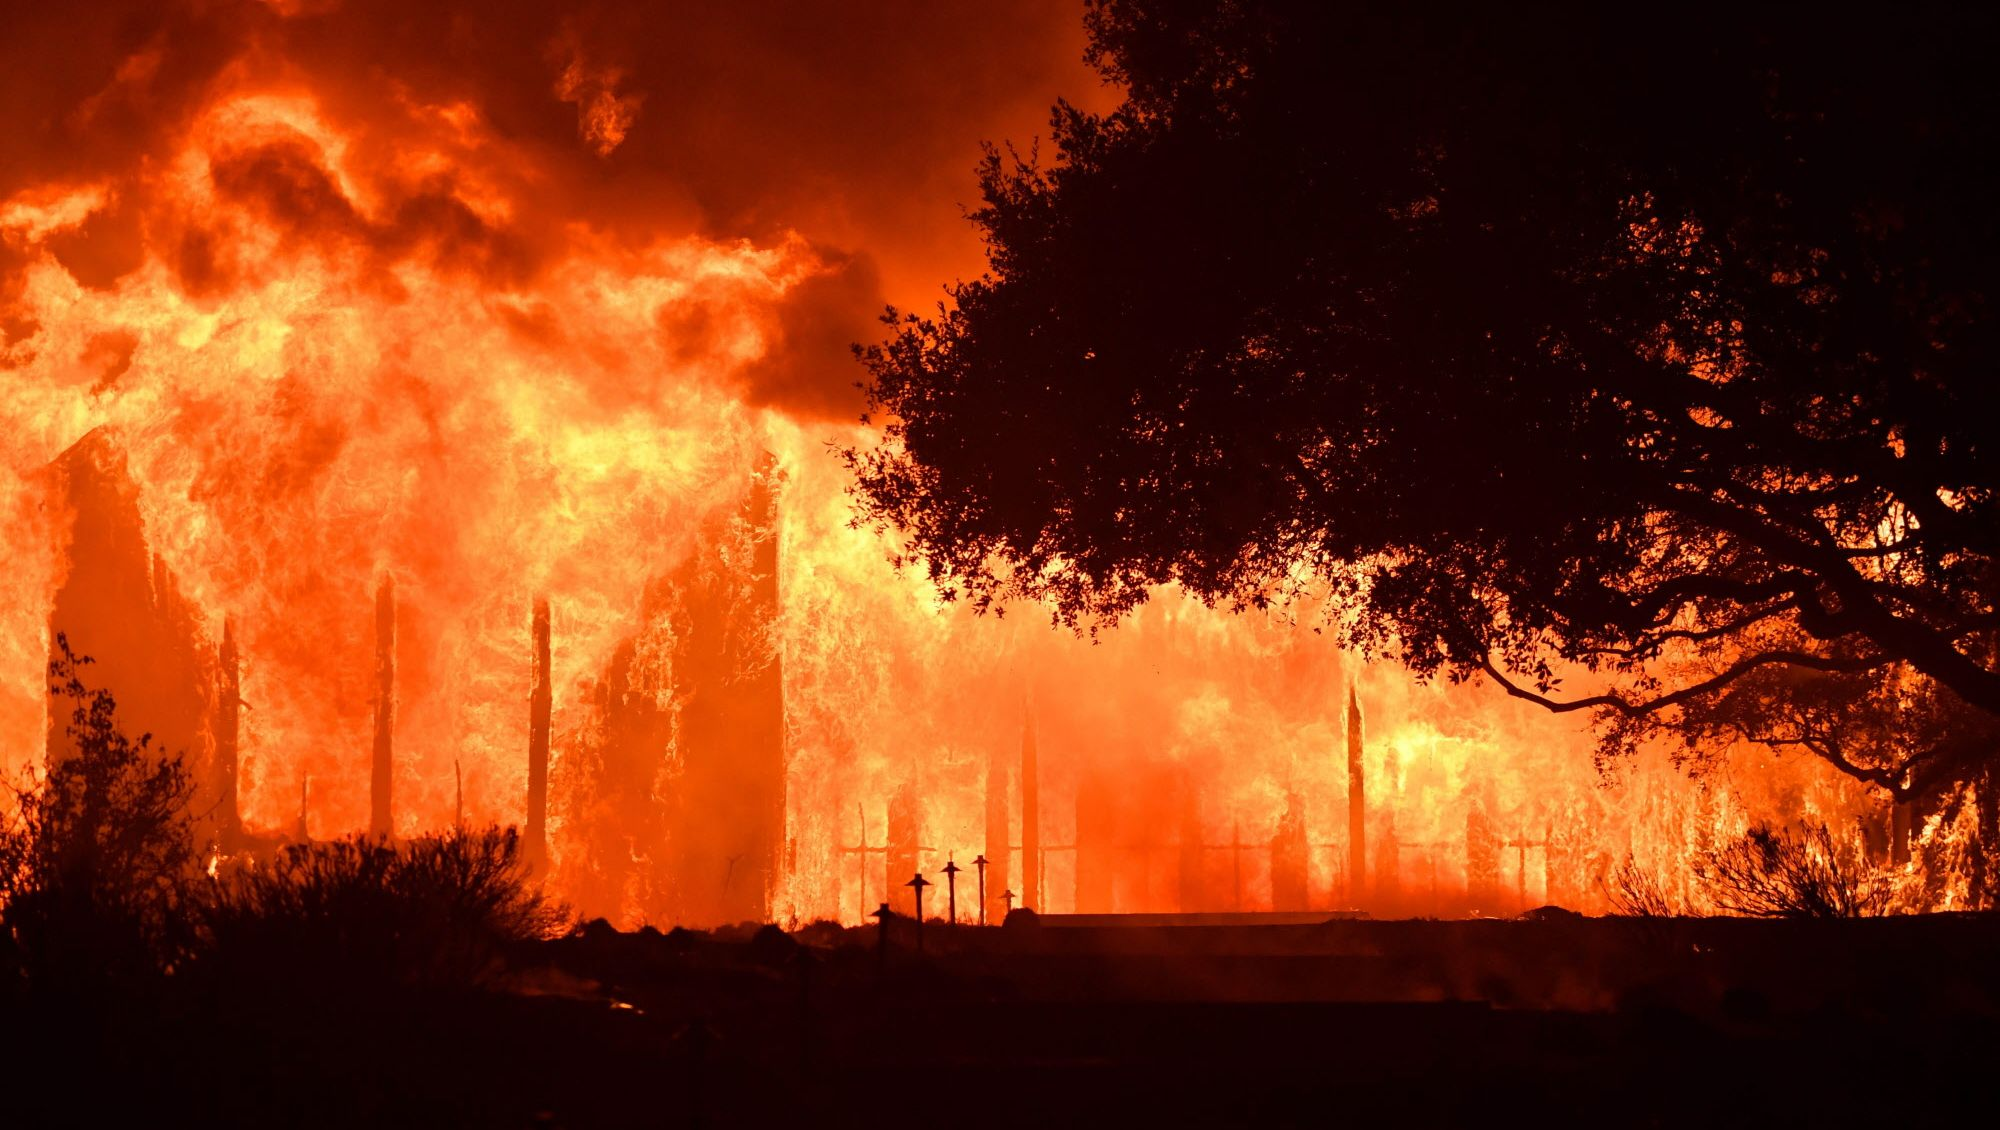 The main building at Paras Vinyards burns in the Mount Veeder area of Napa in California on October 10, 2017. Firefighters battled wildfires in California's wine region on Tuesday as the death toll rose to 15 and thousands were left homeless in neighborhoods reduced to ashes.